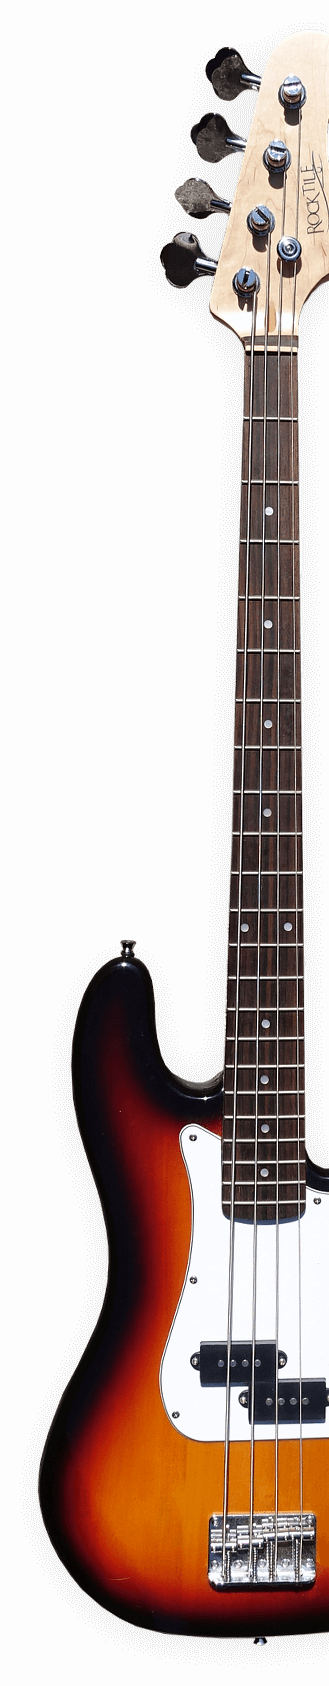 3/4 image of a guitar